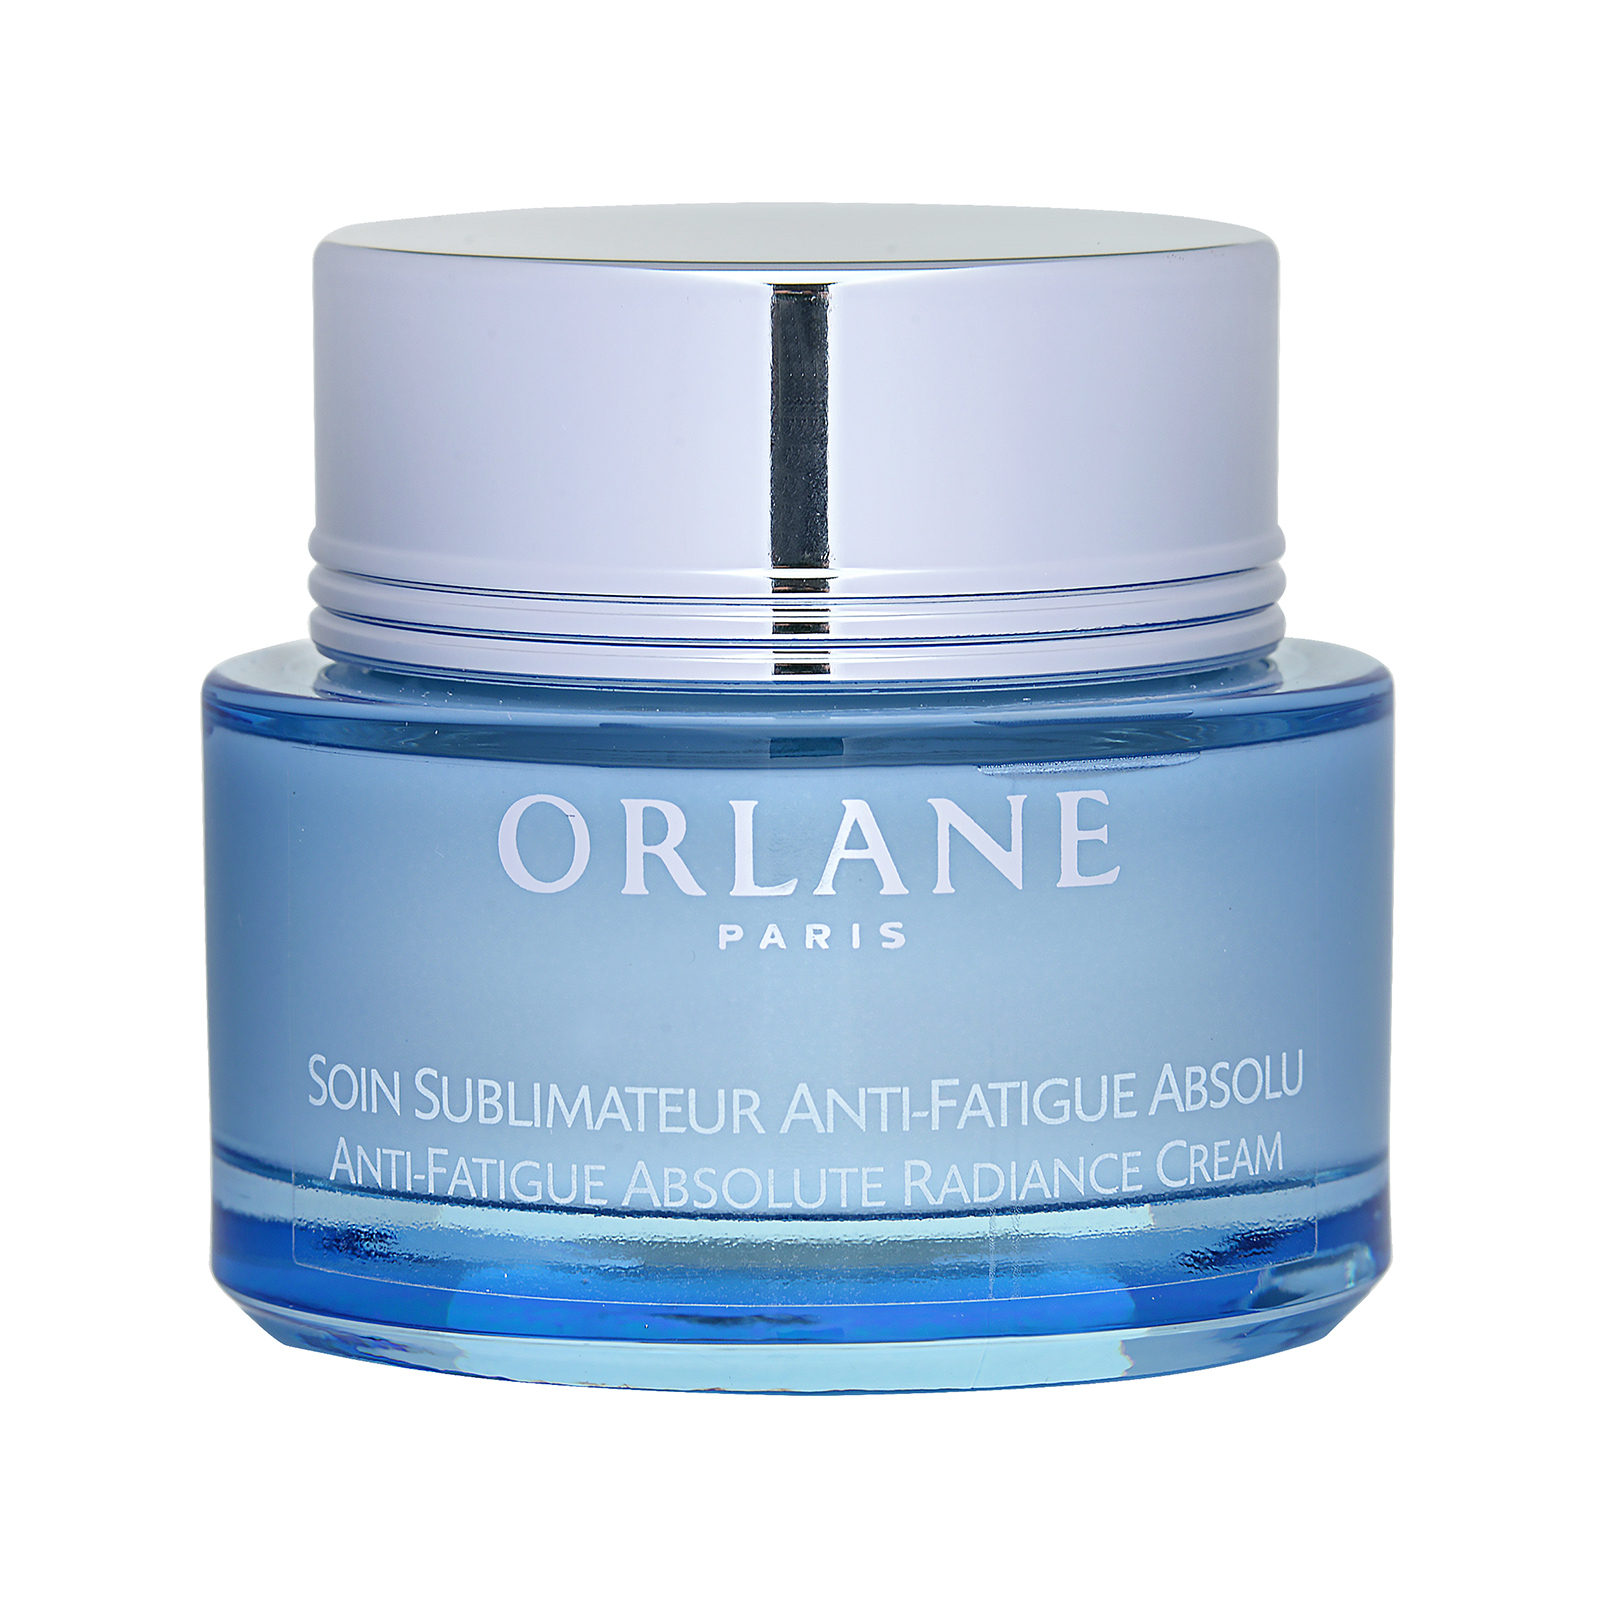 Orlane  Anti-Fatigue Absolute Radiance Care (For All Skin Types) 1.7oz, 50ml from Cosme-De.com